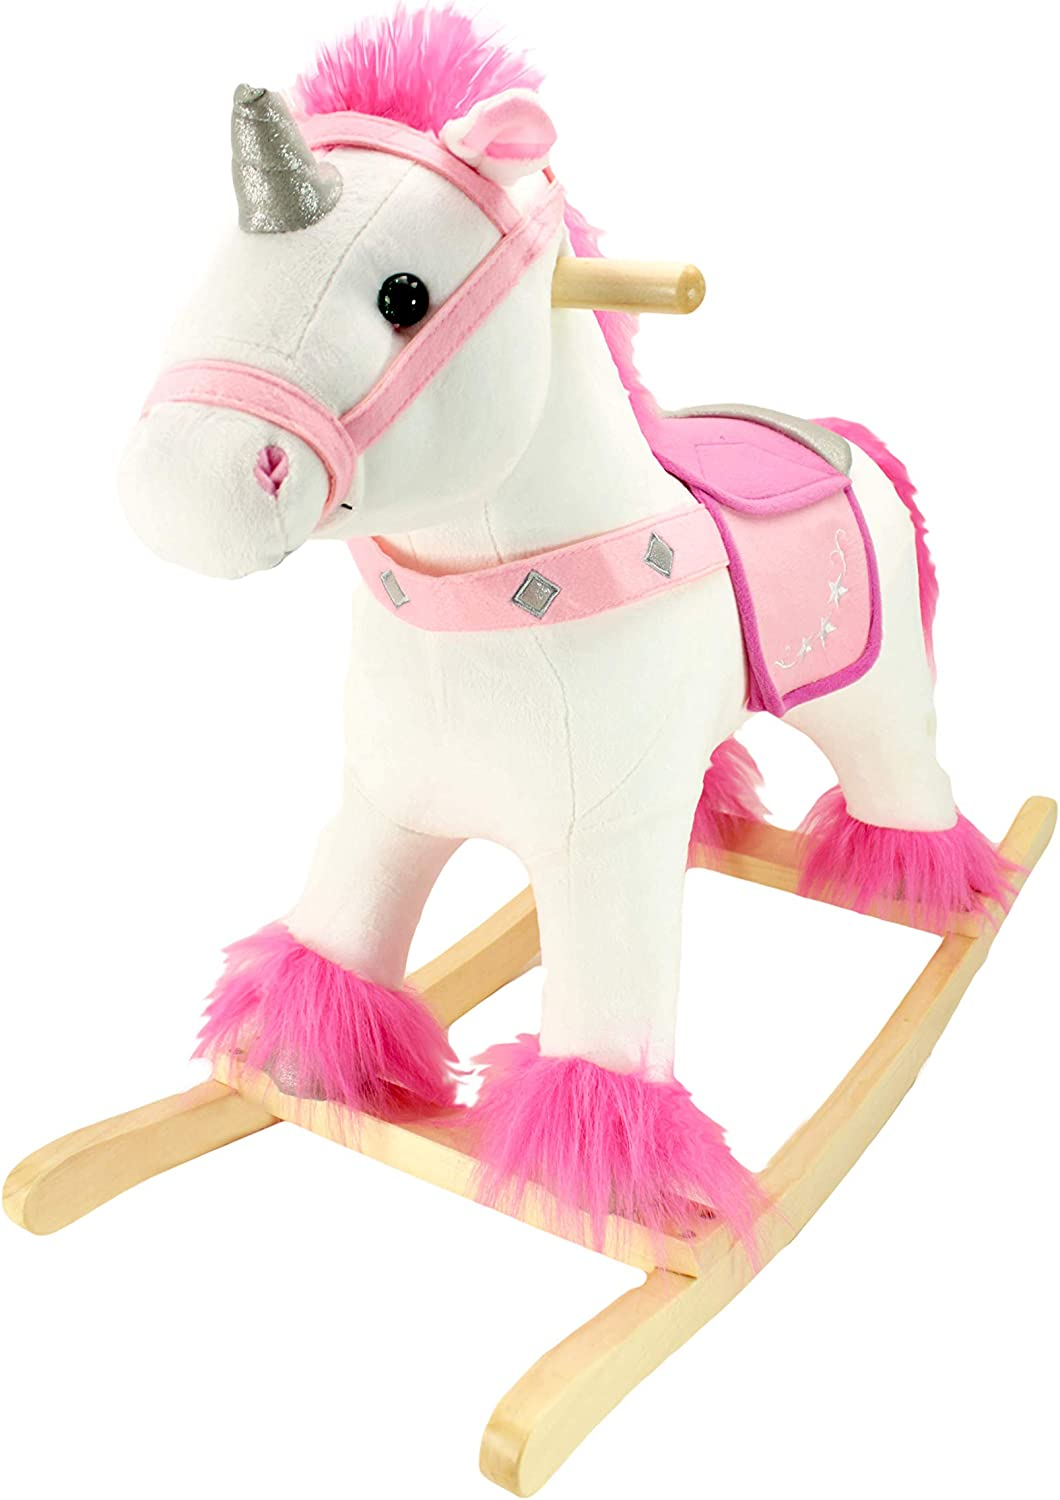 Animal Adventure Real Wood Ride-On Plush Rocker White and Pink Unicorn Perfect for Ages 3